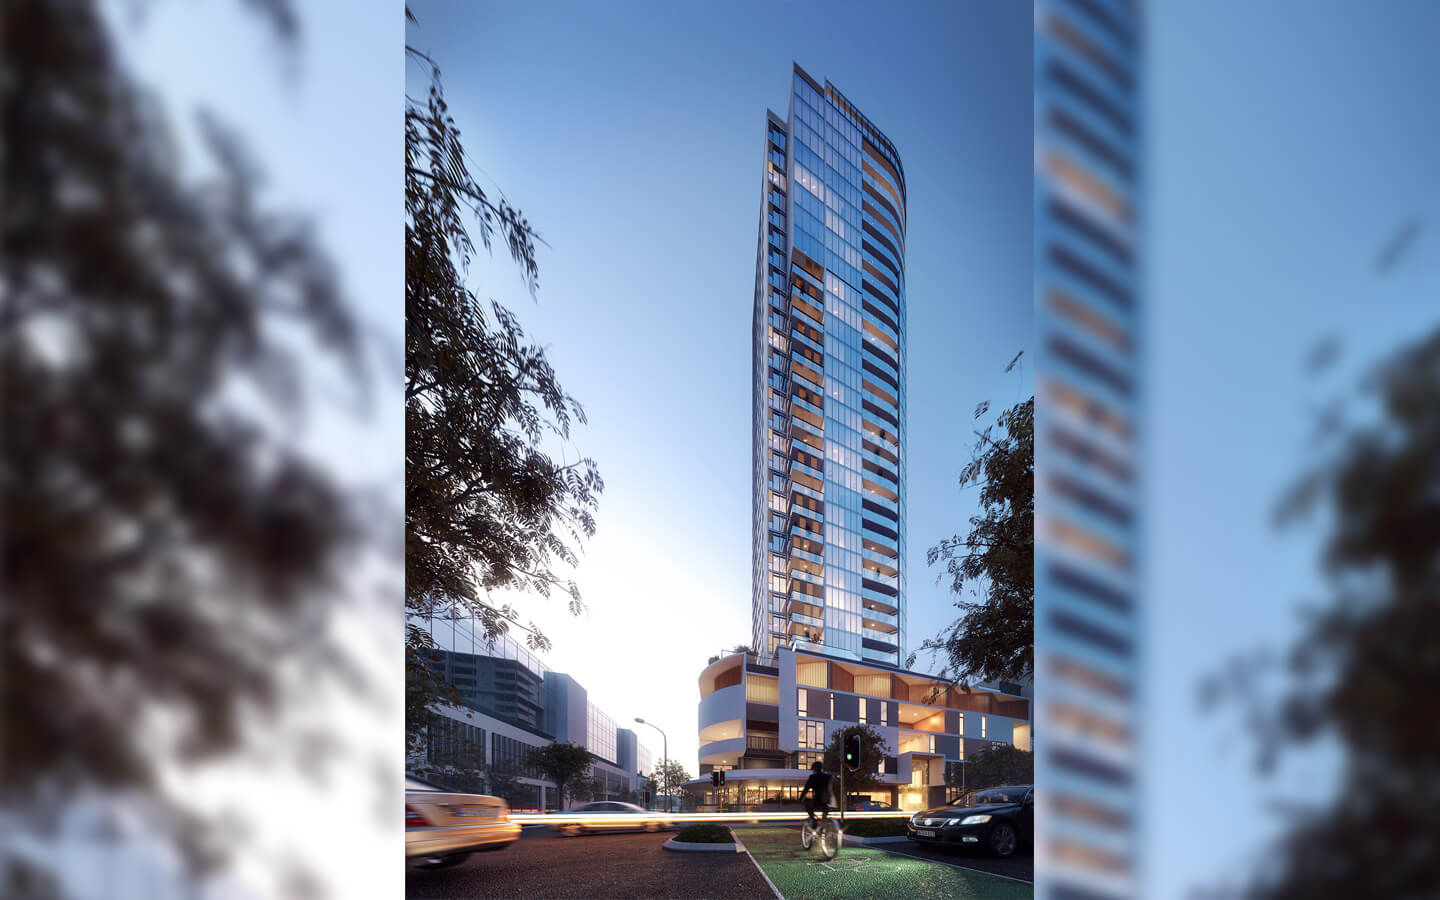 108 Stirling Street, Residential Development, Perth - Hera Engineering